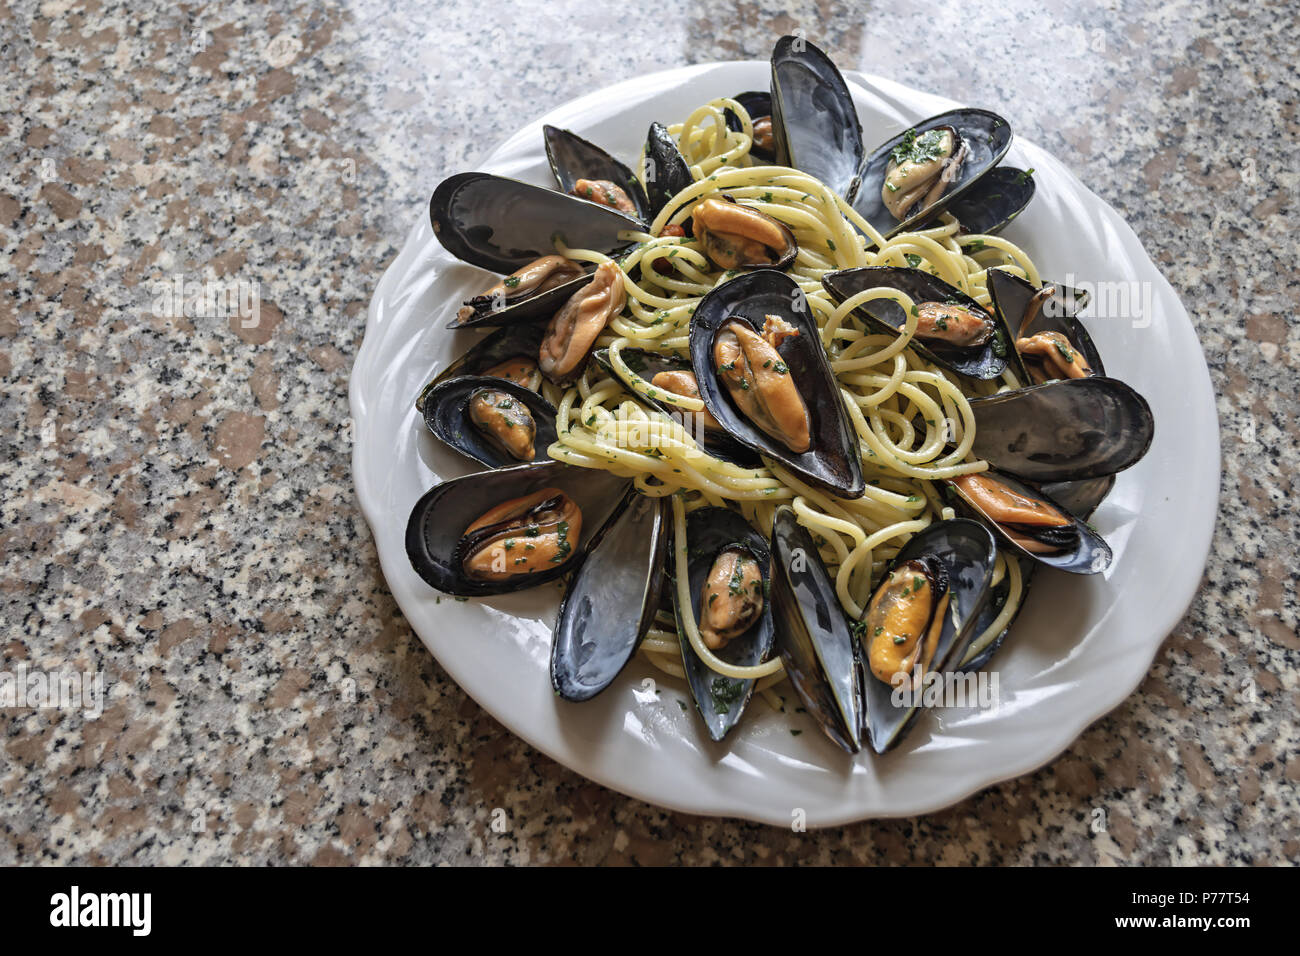 spaghetti pasta with mussels garlic and parsley 5 - Stock Image